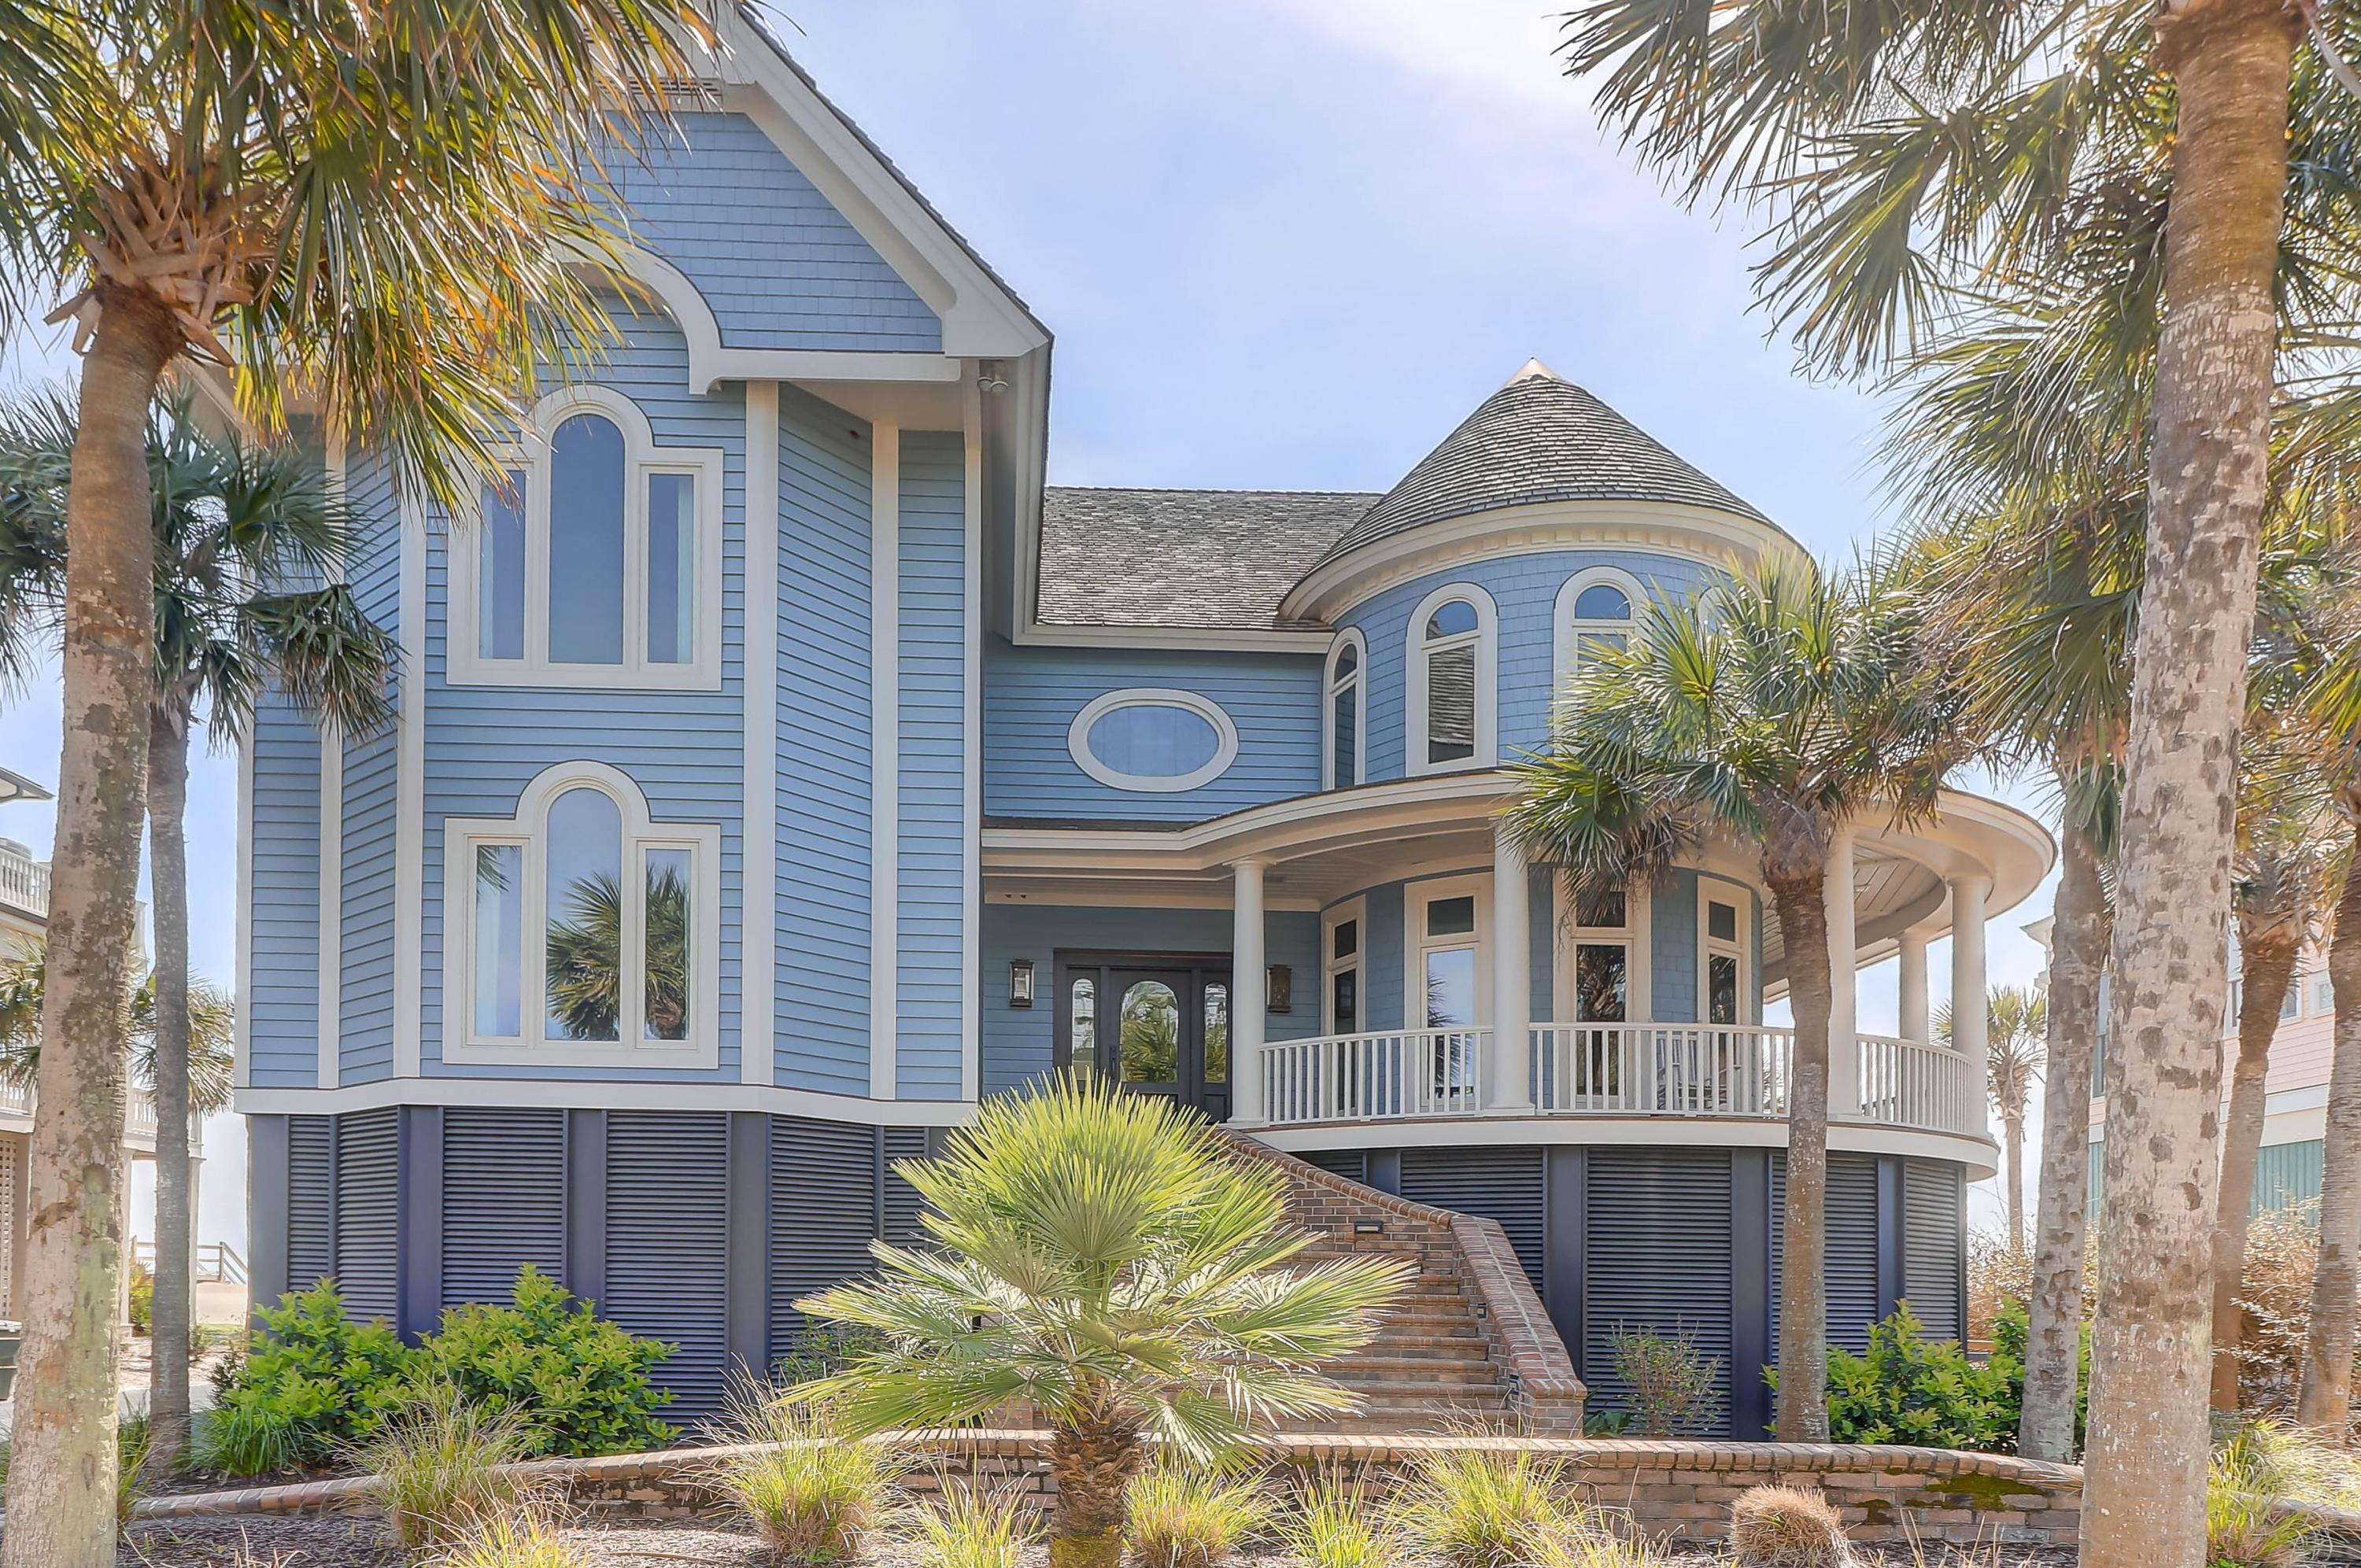 18 E Beachwood Isle Of Palms, SC 29451